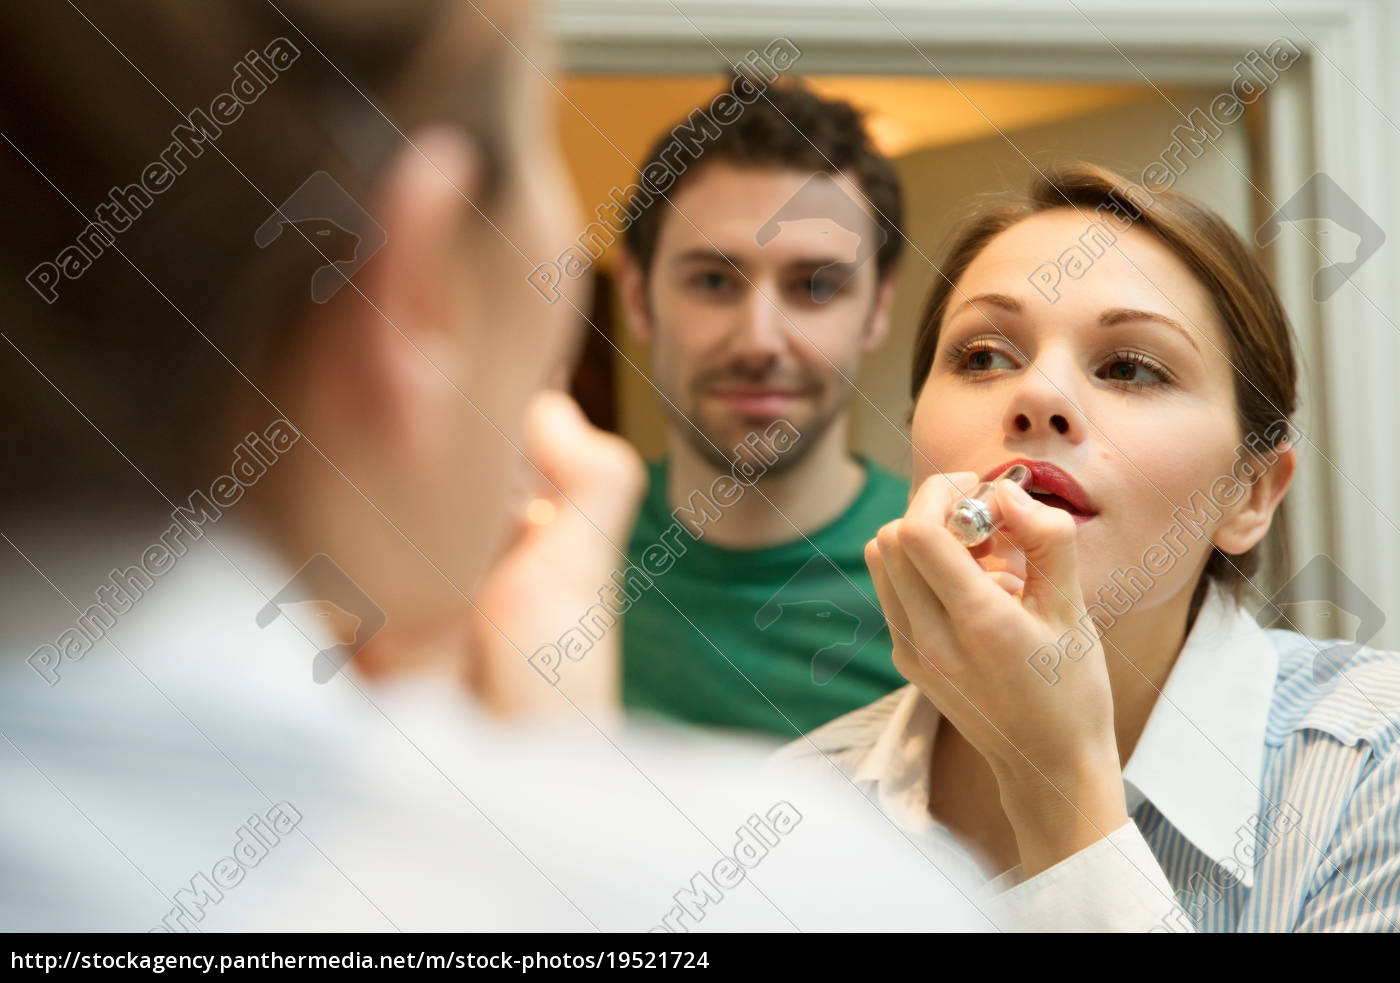 young, woman, applying, lipstick, in, bathroom - 19521724